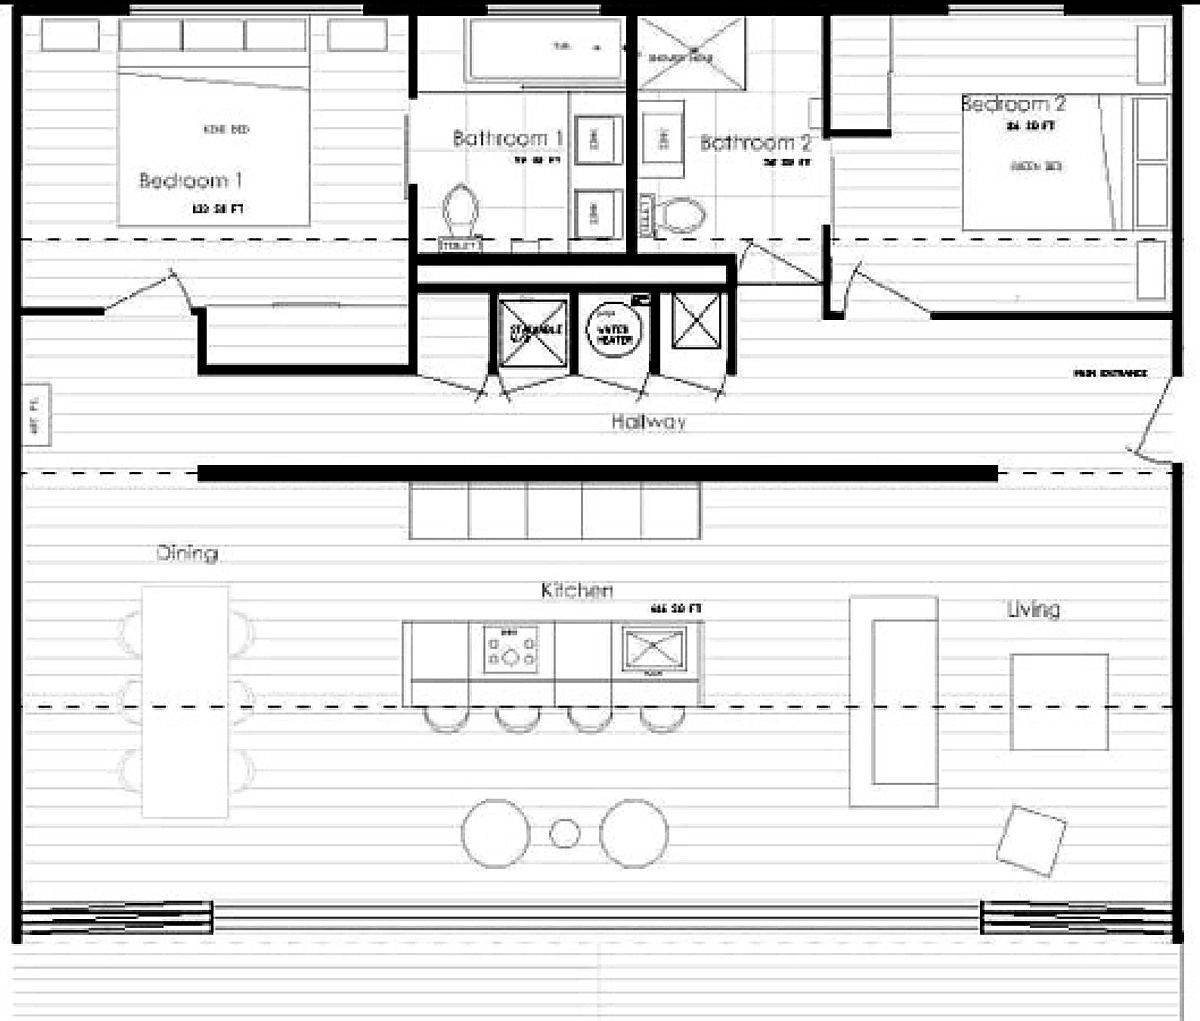 Container home floor plan iq hause christopher bord for Homes from shipping containers floor plans